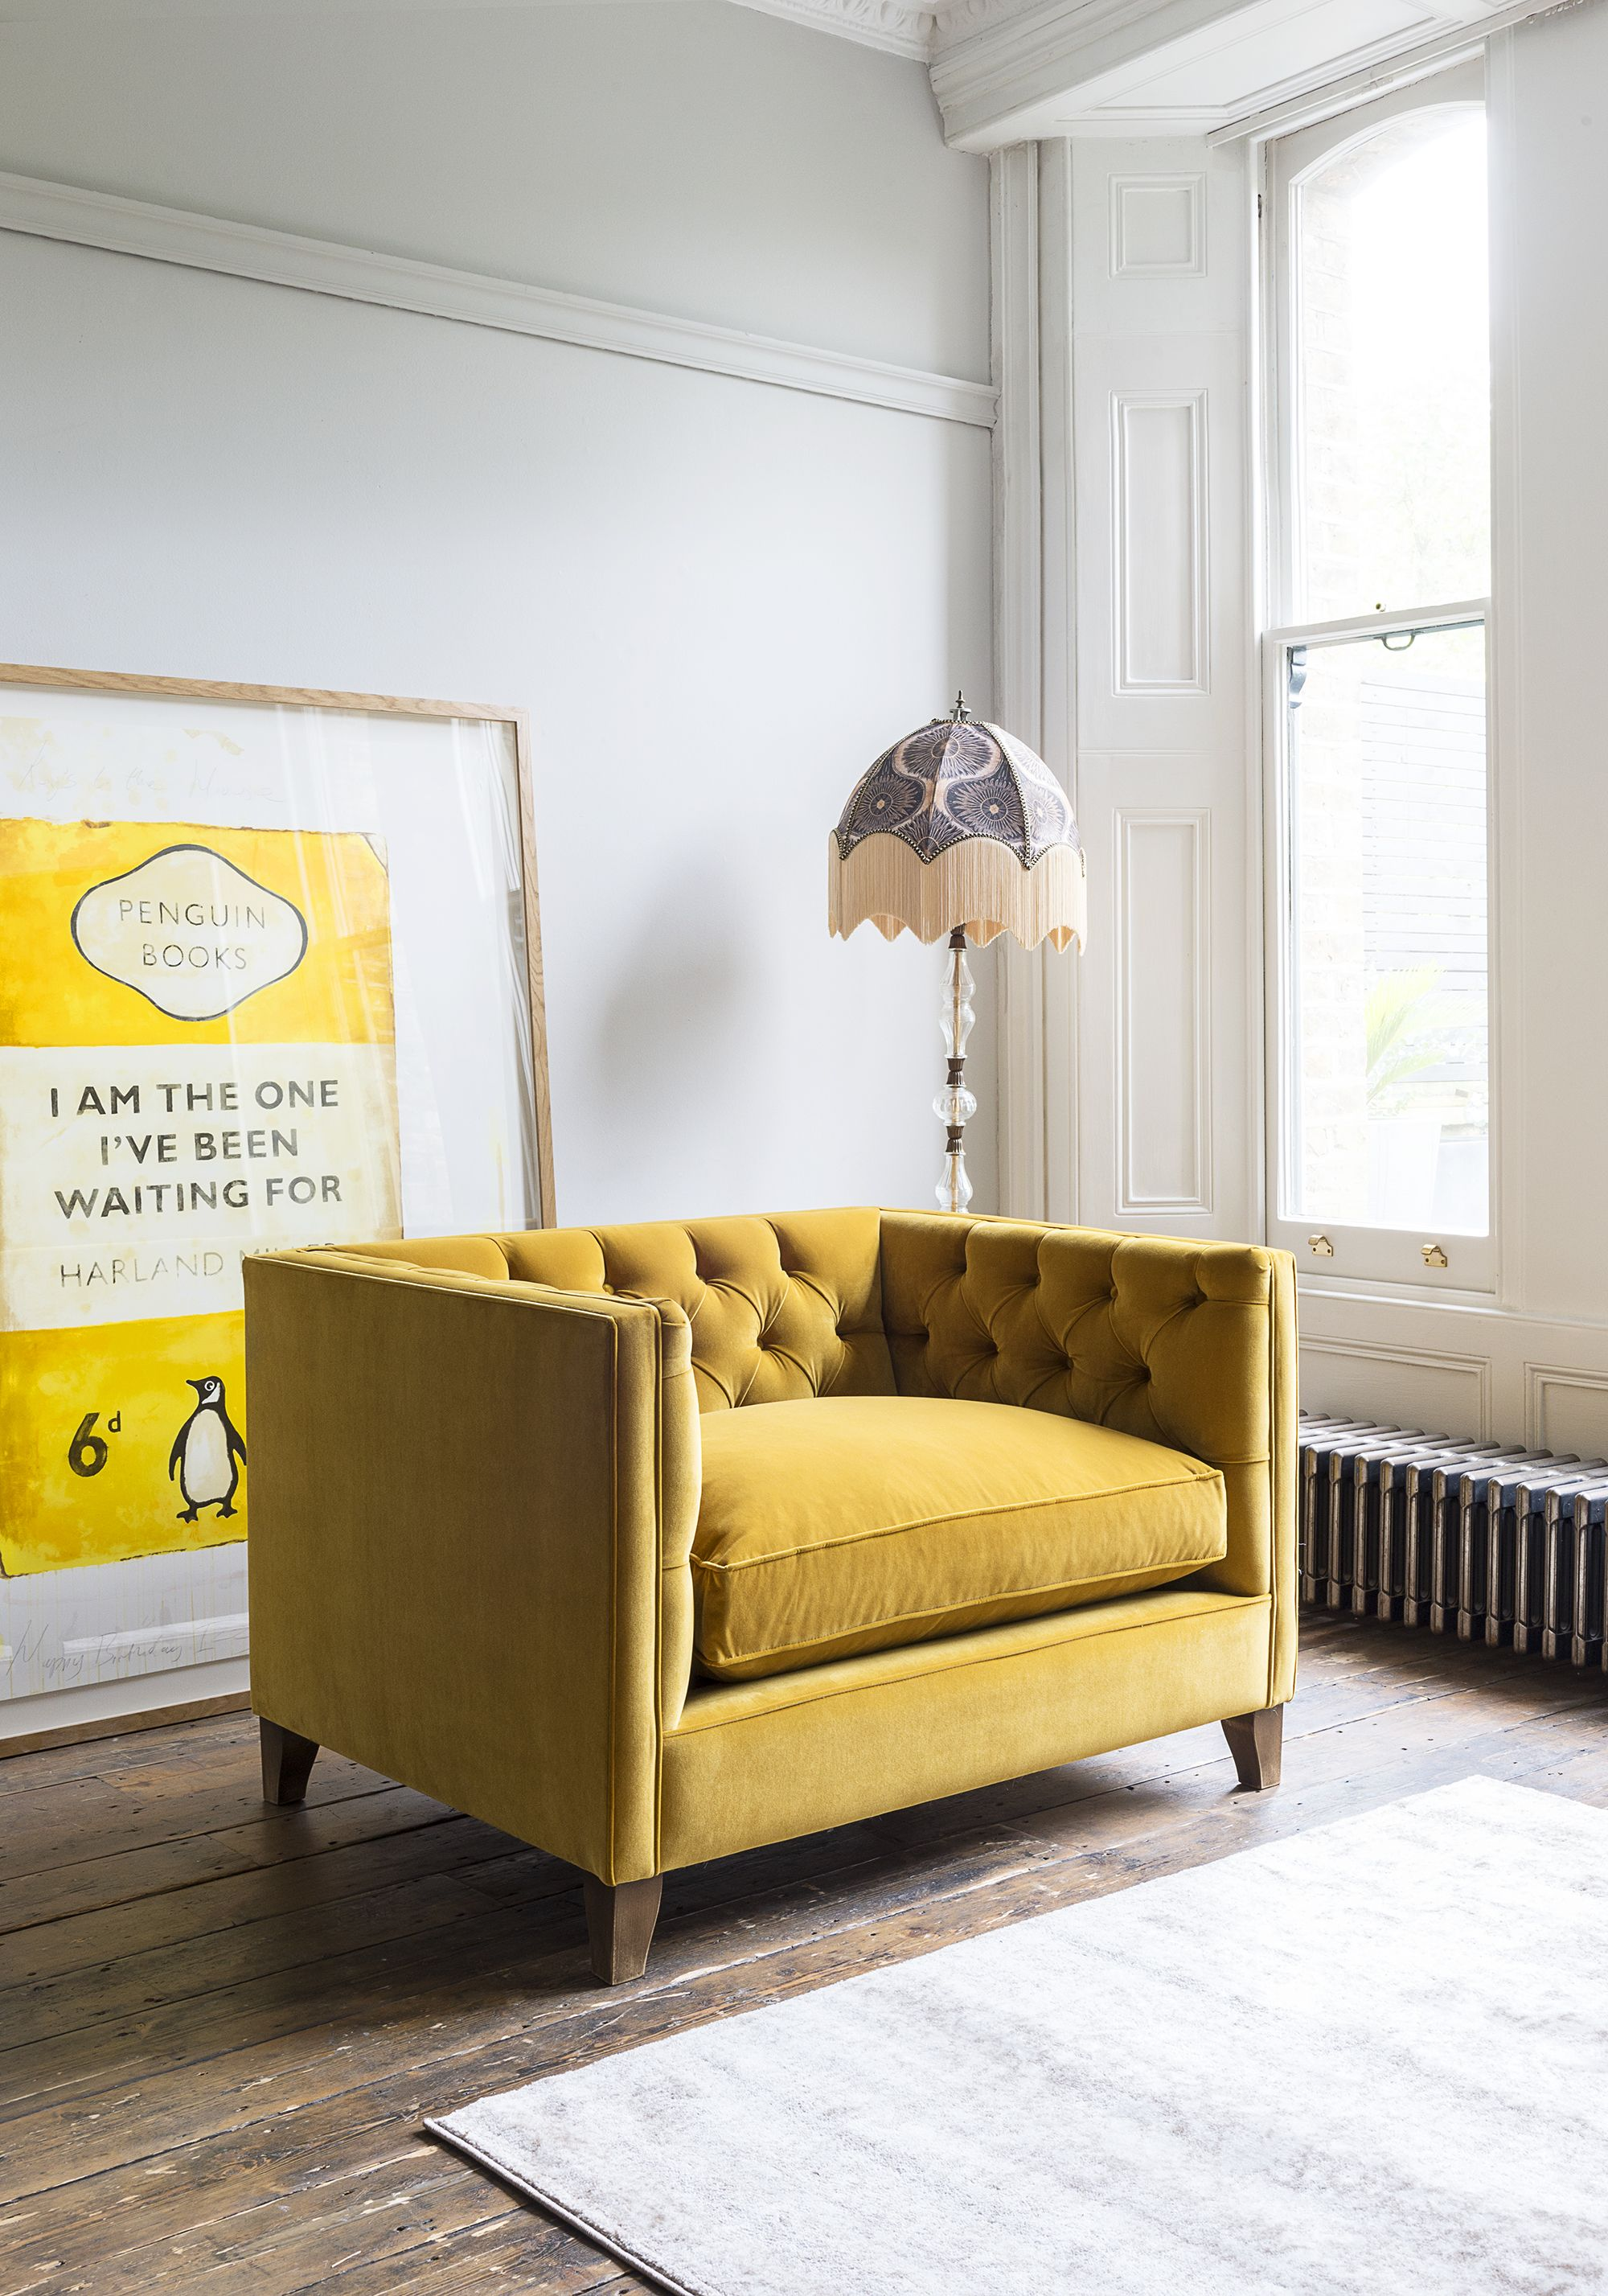 Yellow Sofas 9 Of The Bestwhether Your Taste Is For Mustard Or Saffron Shades Burnt Ambers Or Subtle Apricots Find A Stand Yellow Sofa Love Seat Sofa Design